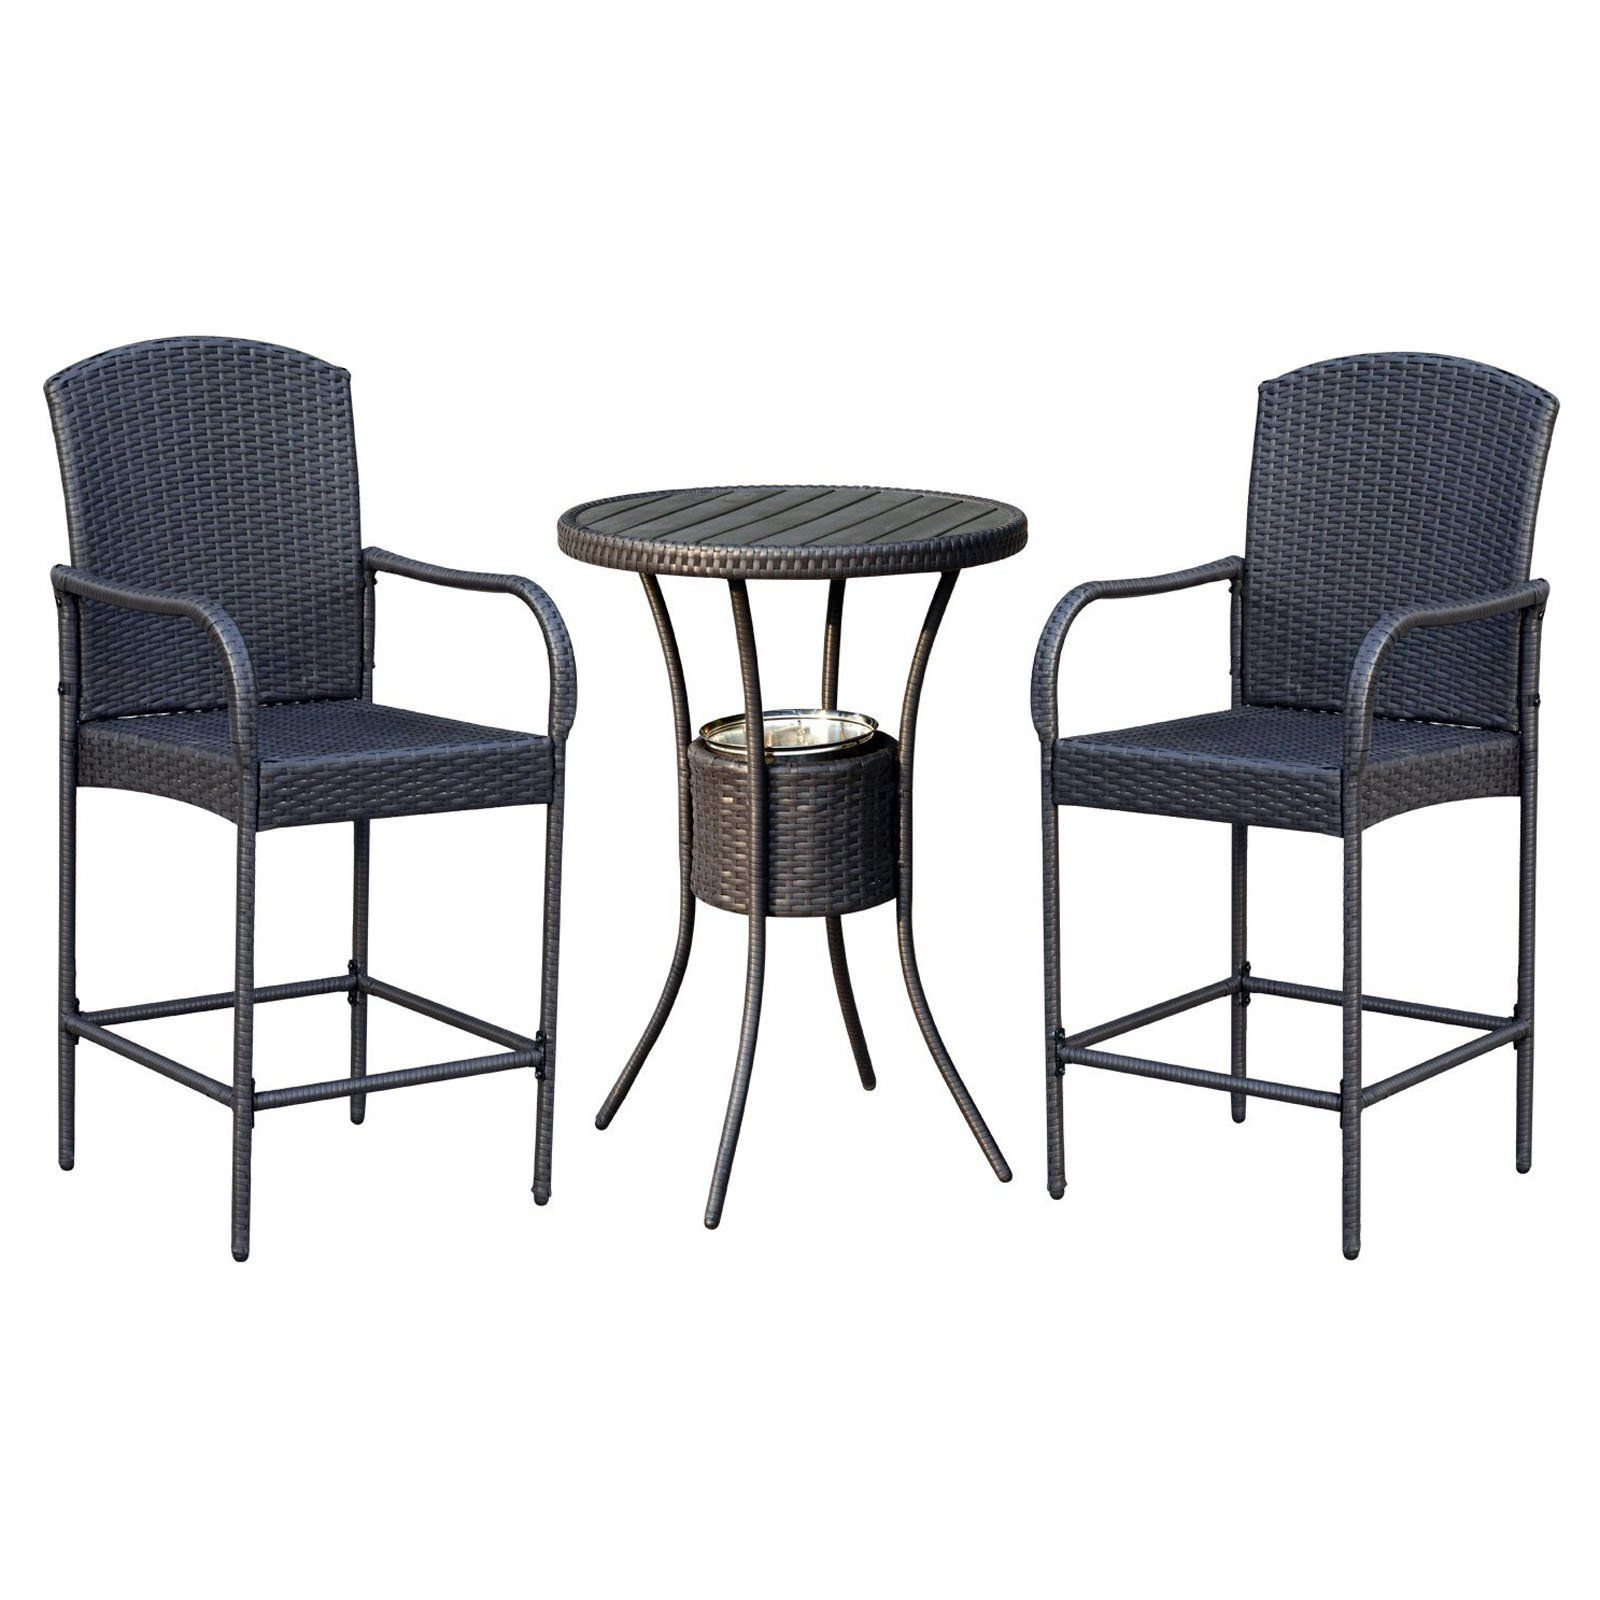 Outdoor Outsunny Rattan Wicker 3 Piece Patio Bar Height Bistro Set